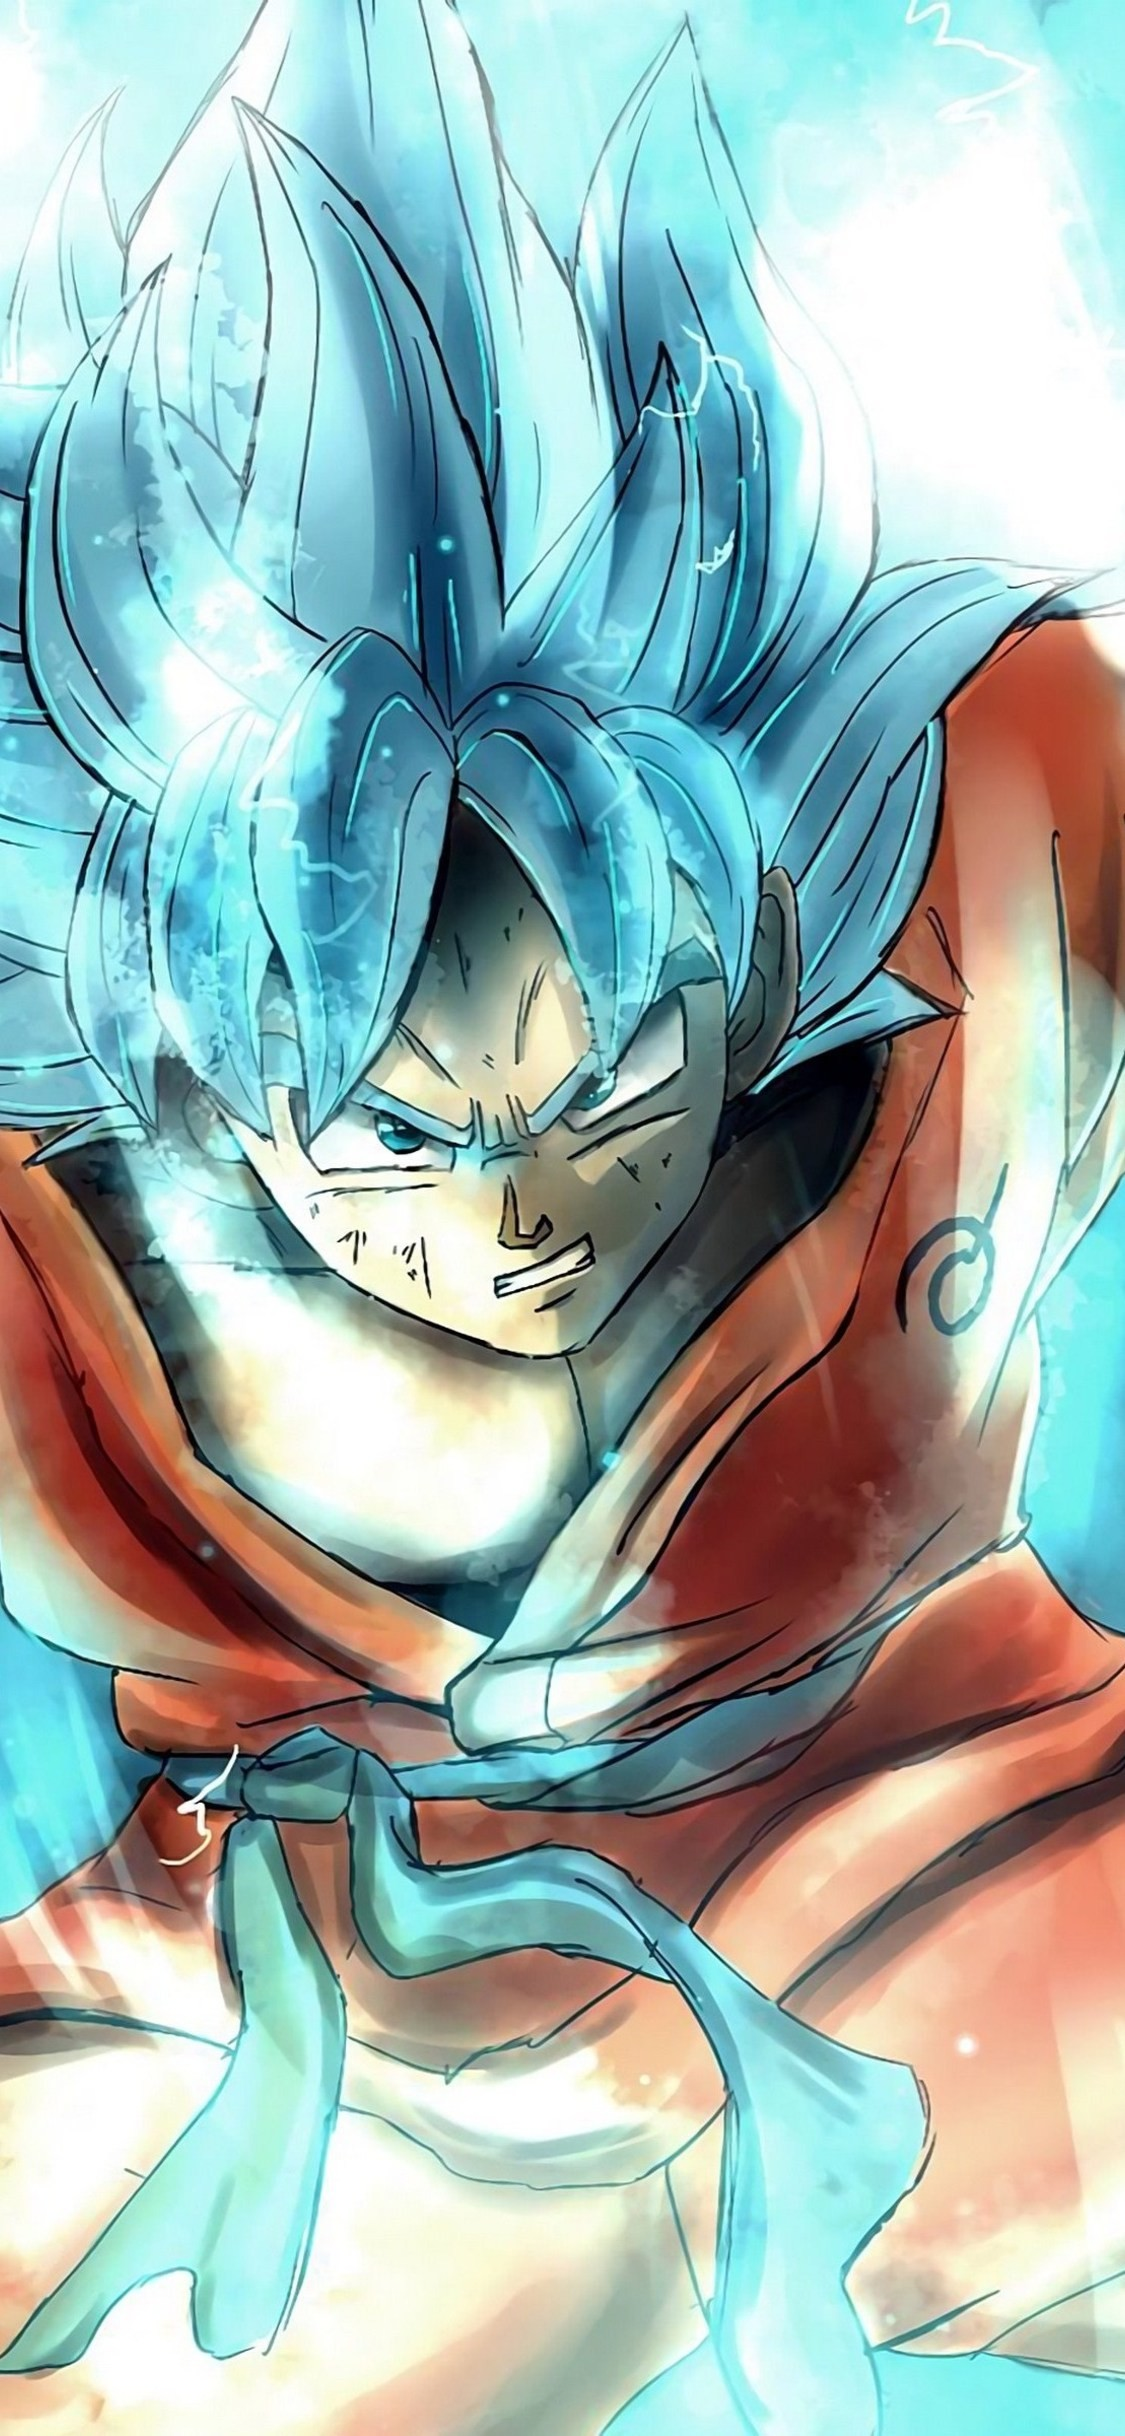 77 Goku Iphone Wallpapers on WallpaperPlay 1125x2436